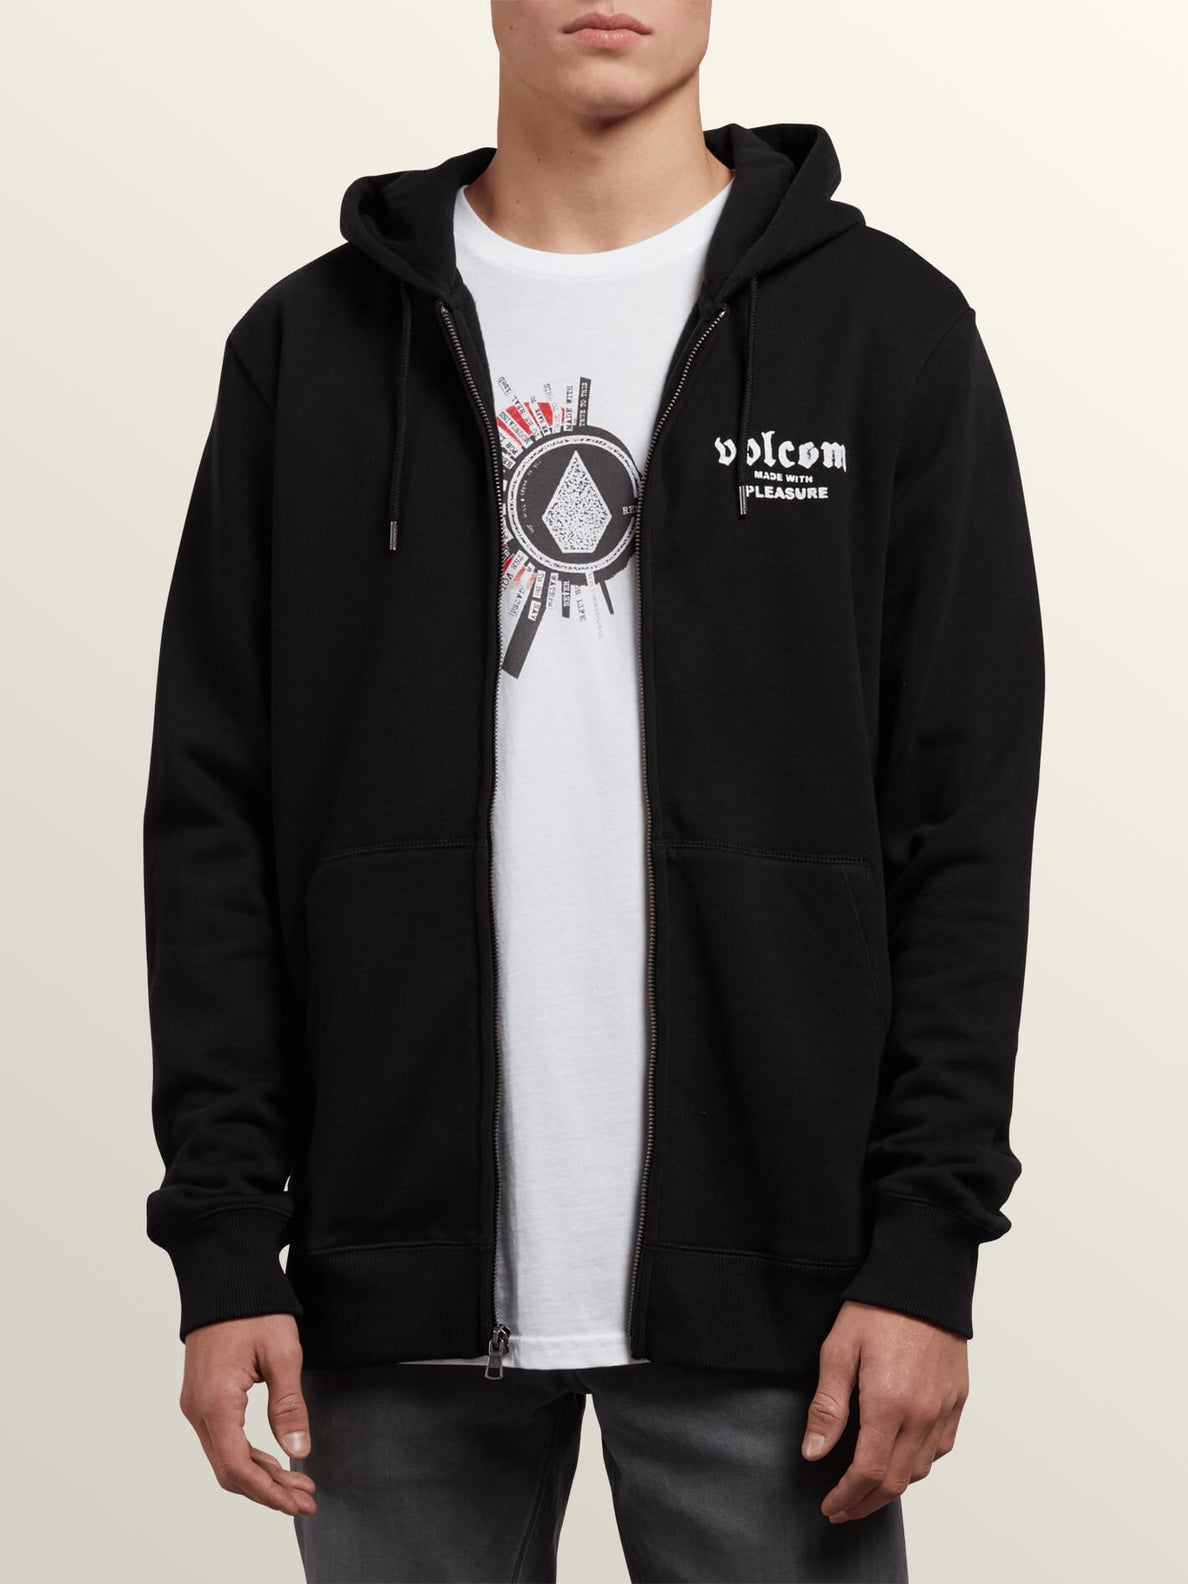 Supply Stone Zip Sweaters - Black